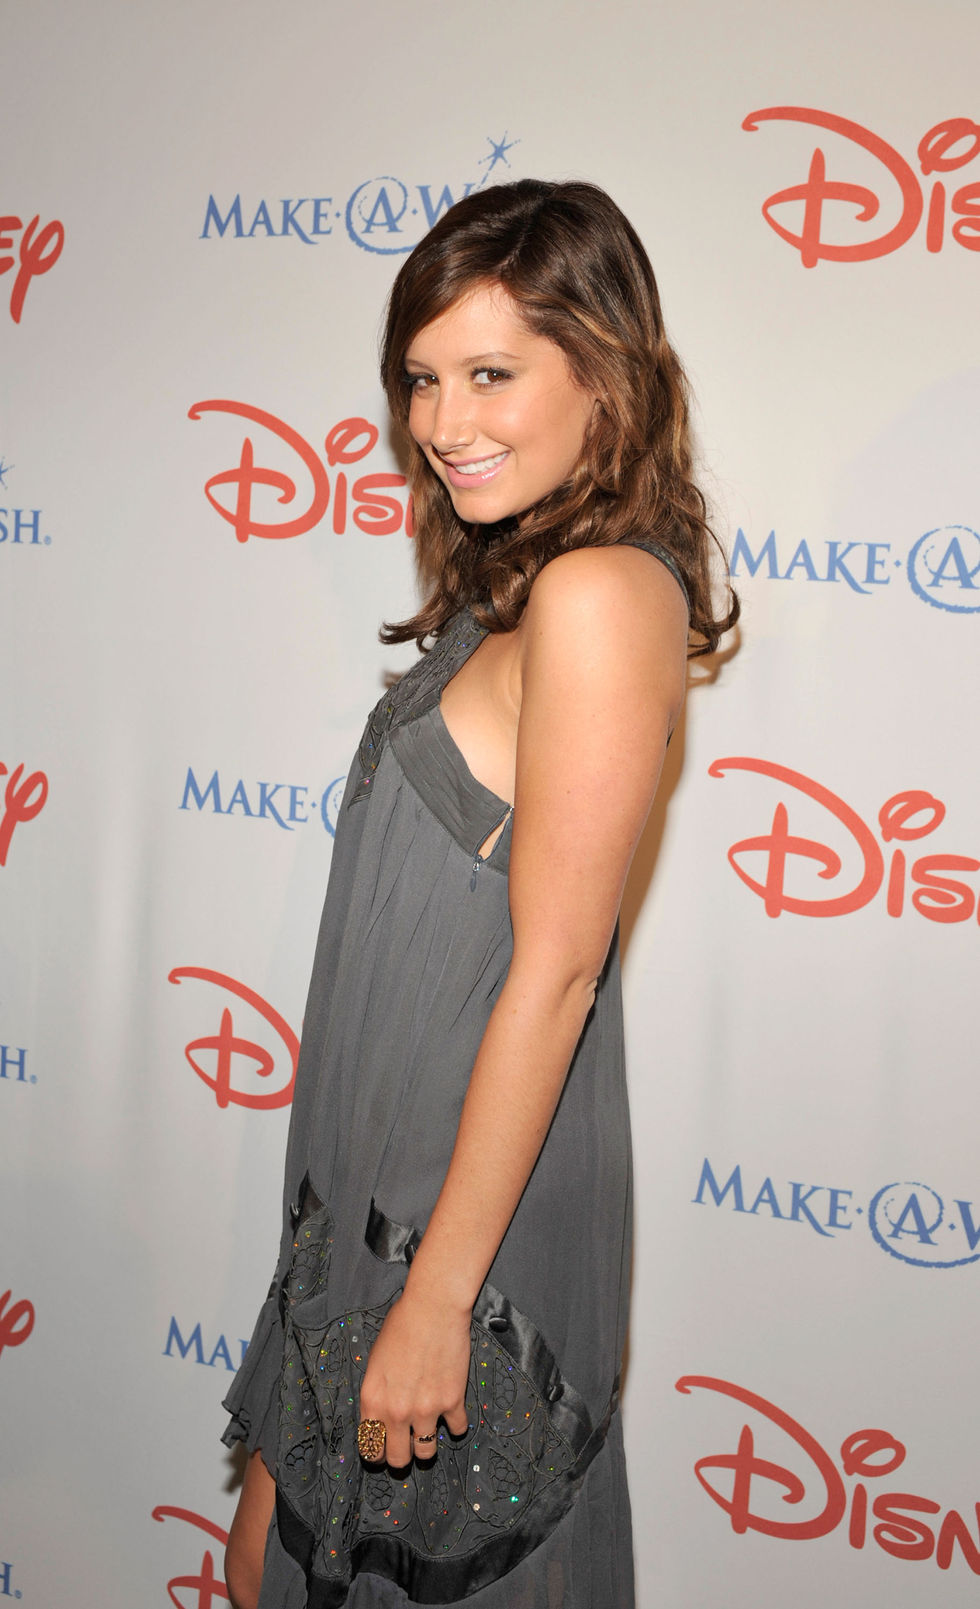 ashley-tisdale-make-a-wish-gala-in-beverly-hills-01